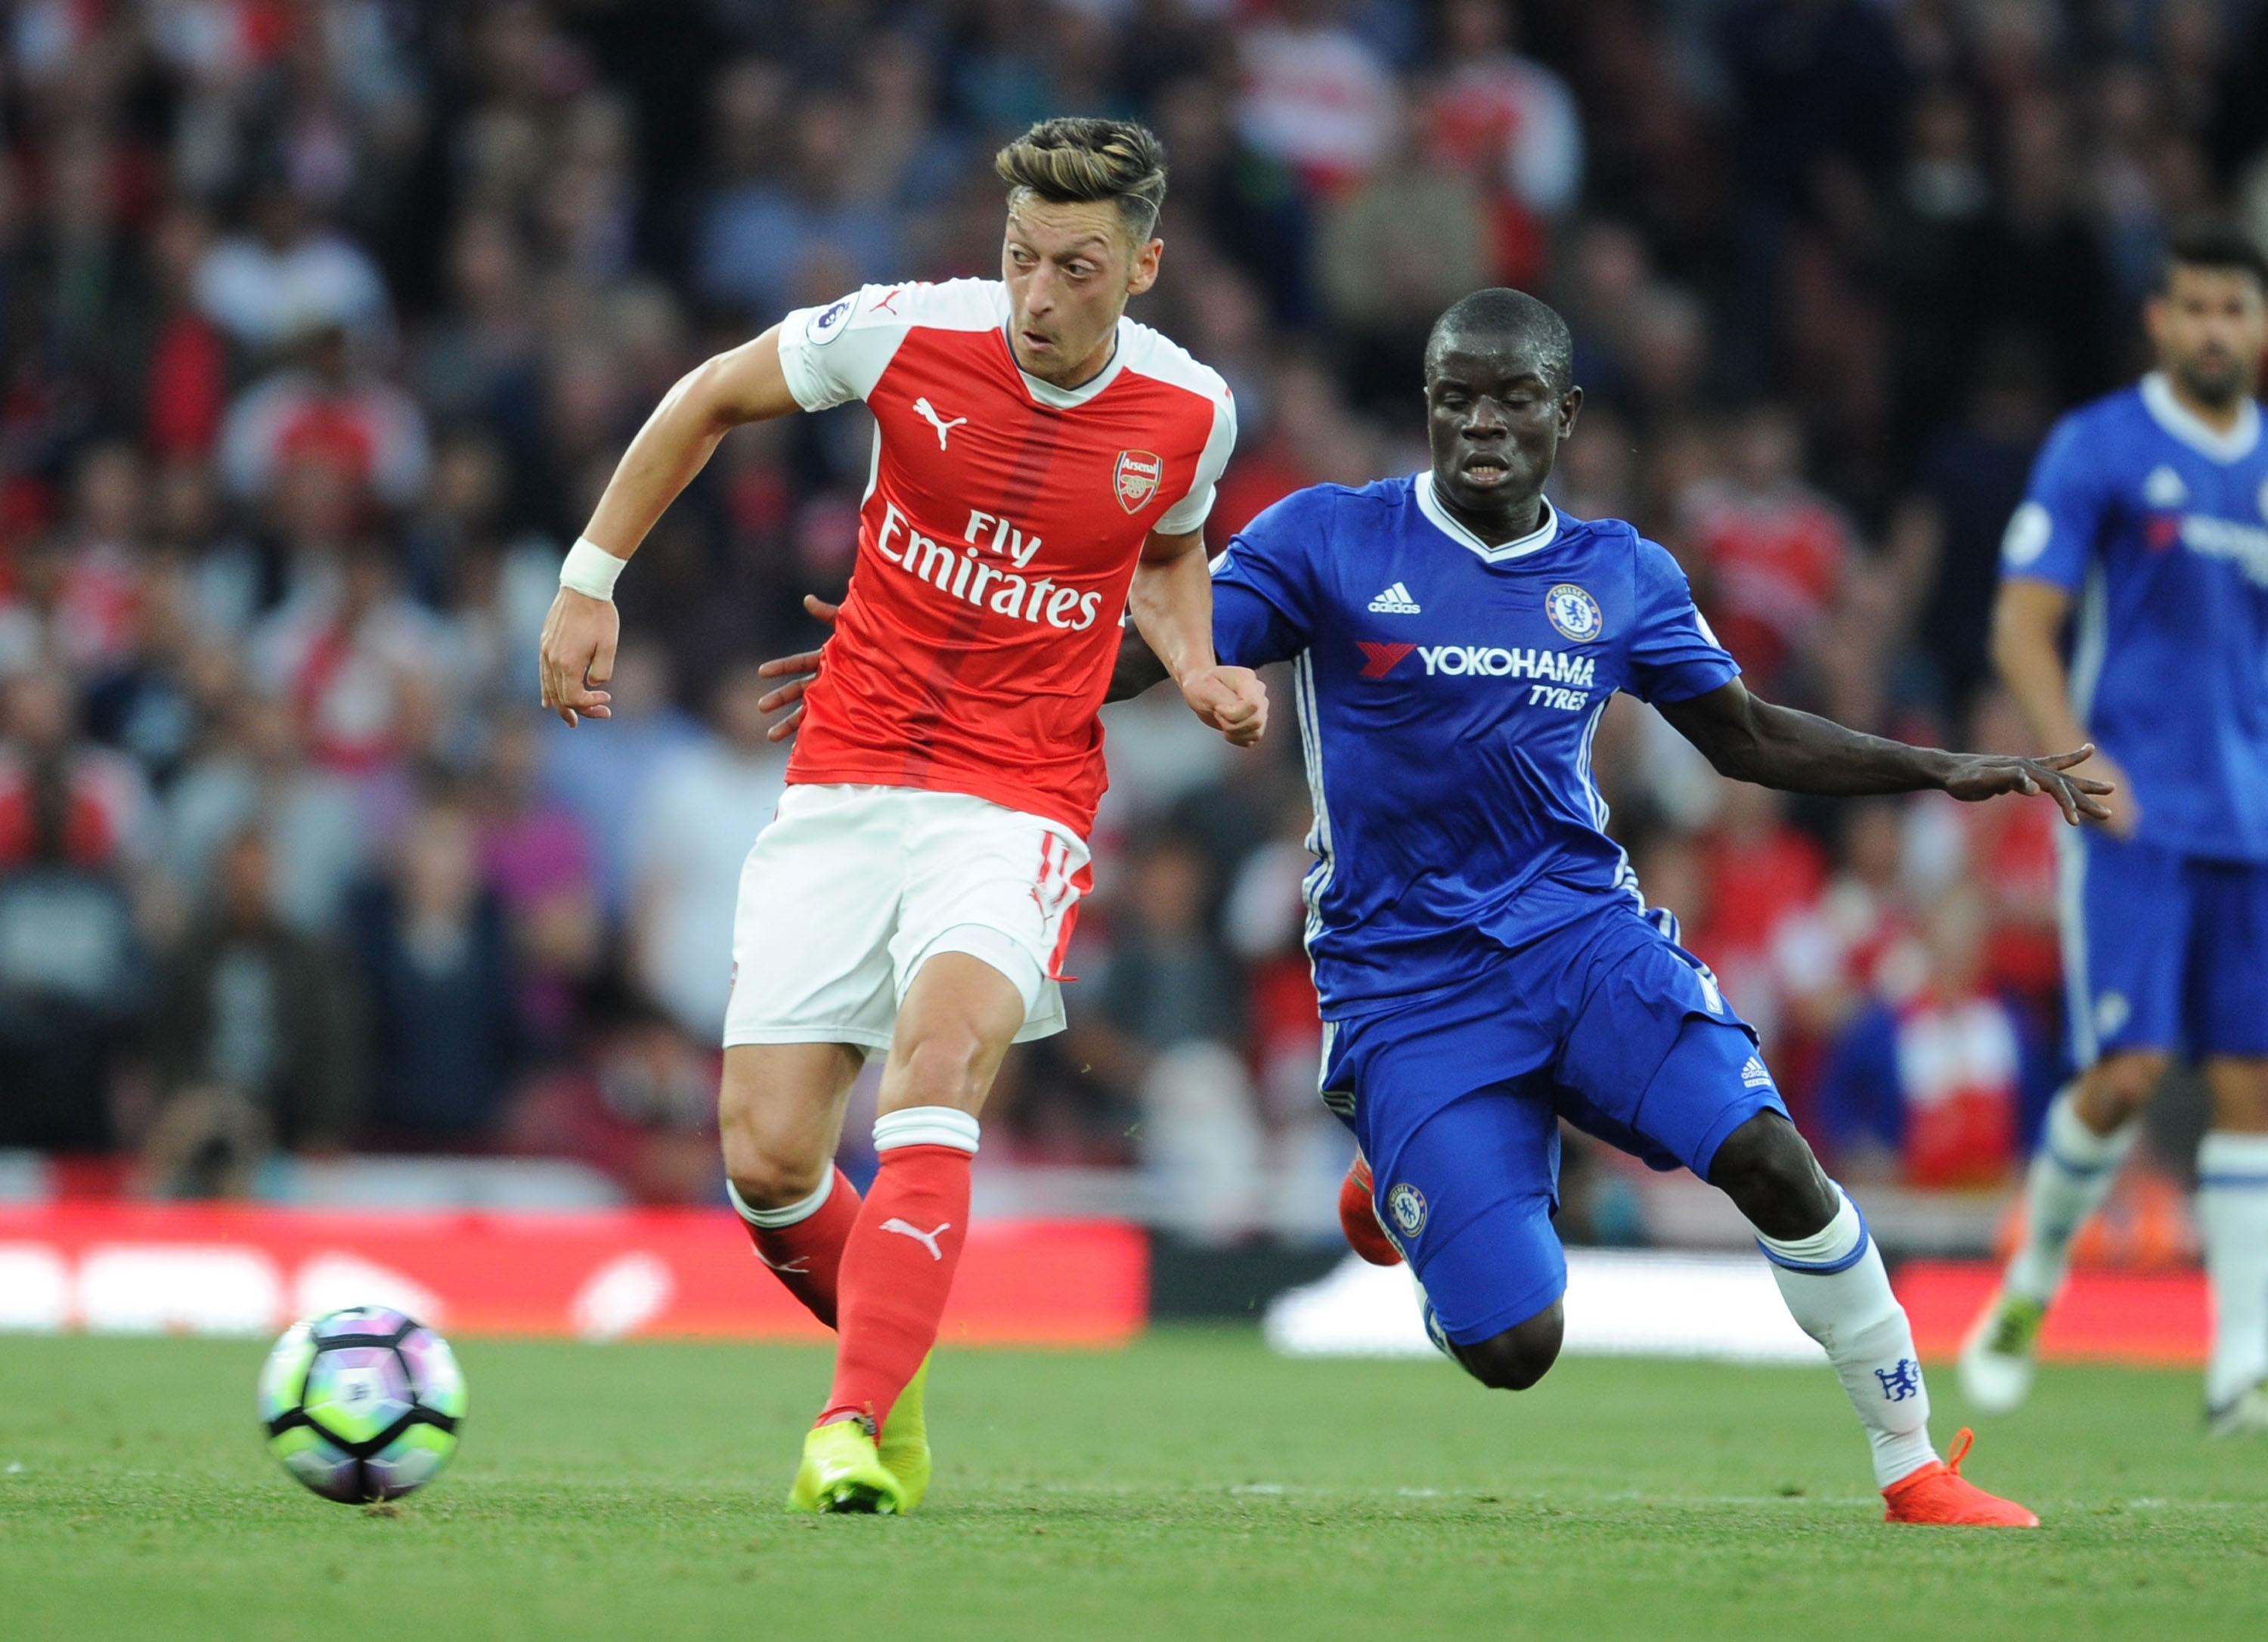 The next Claude Makelele battles it out with N'Golo Kante